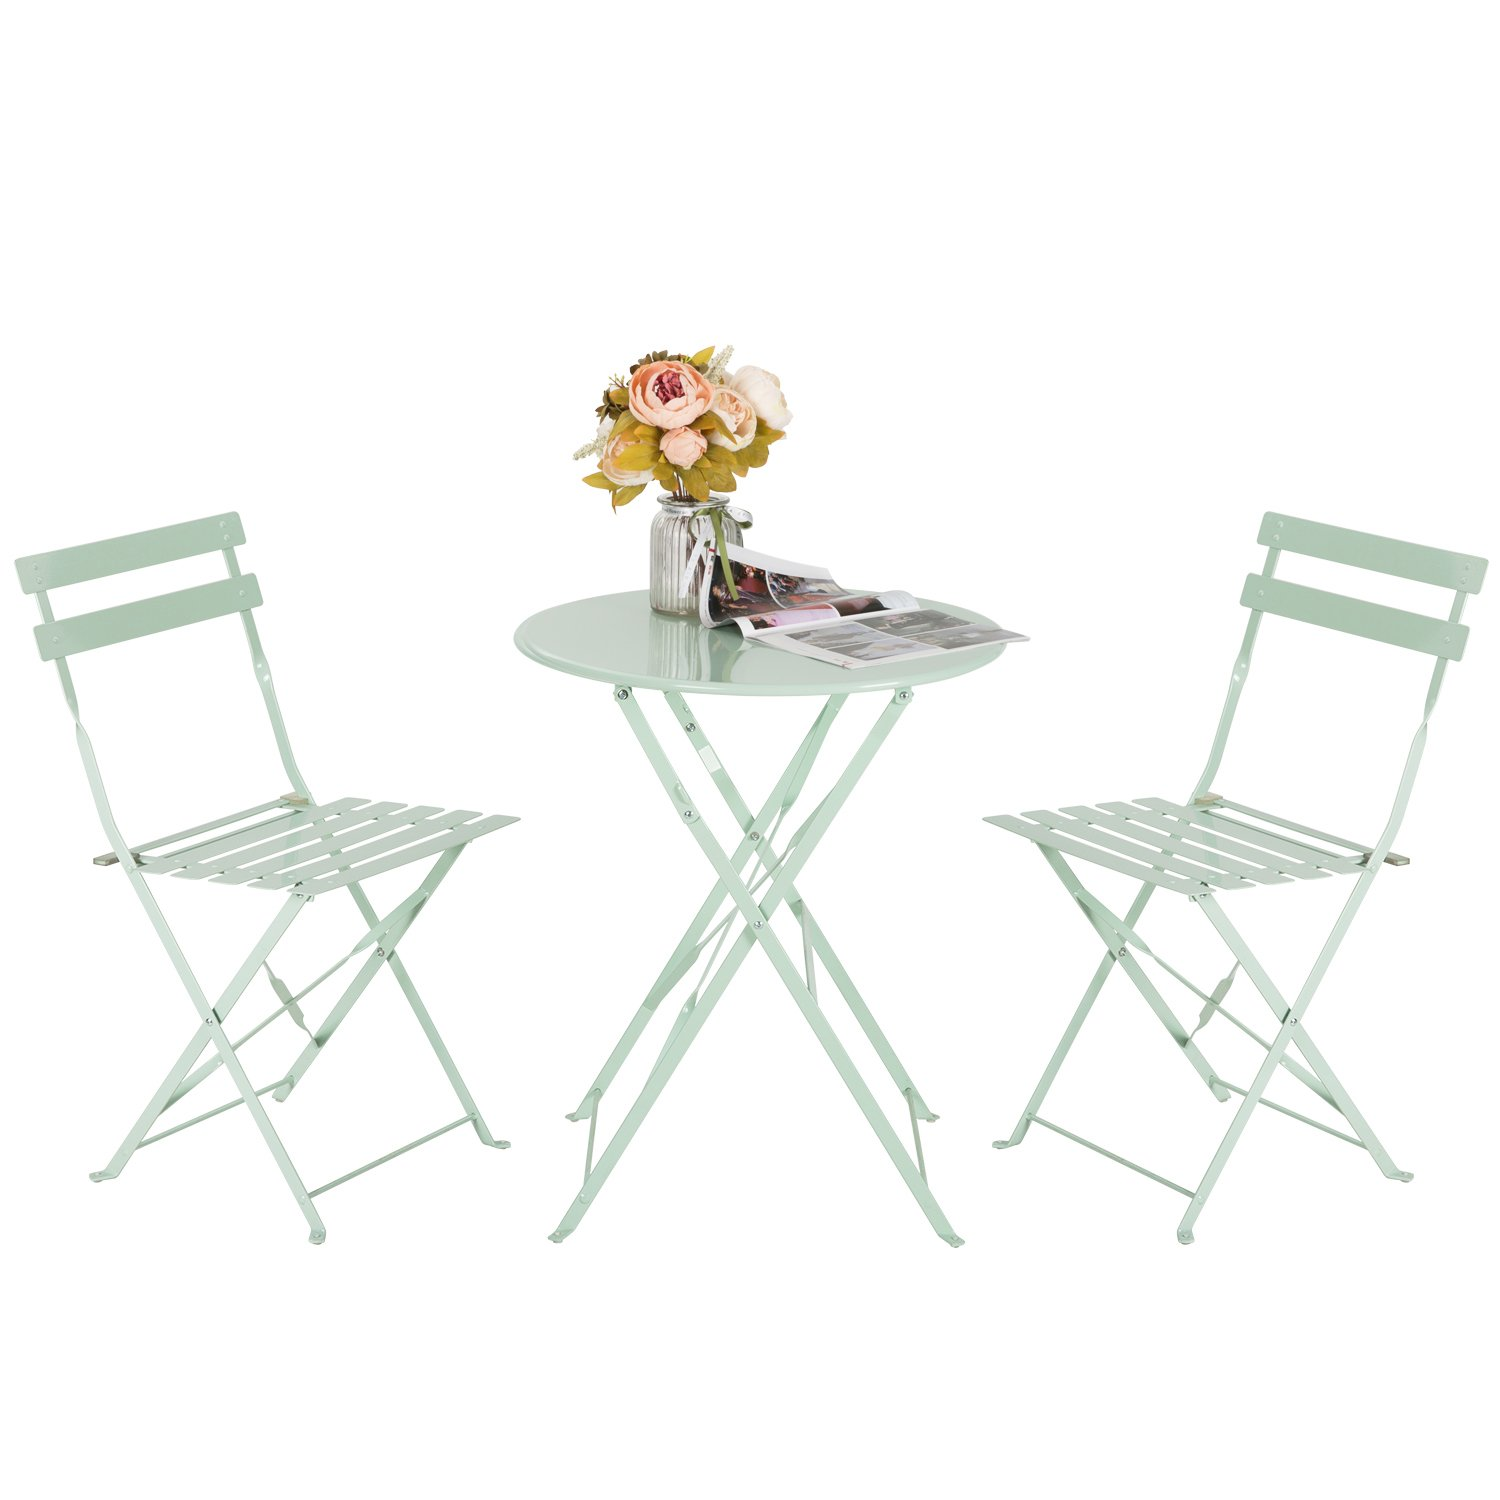 Marble Field Patio 3-Piece Folding Bistro Furniture Set, Outdoor&Balcony Table and Chairs Sets, Light Green